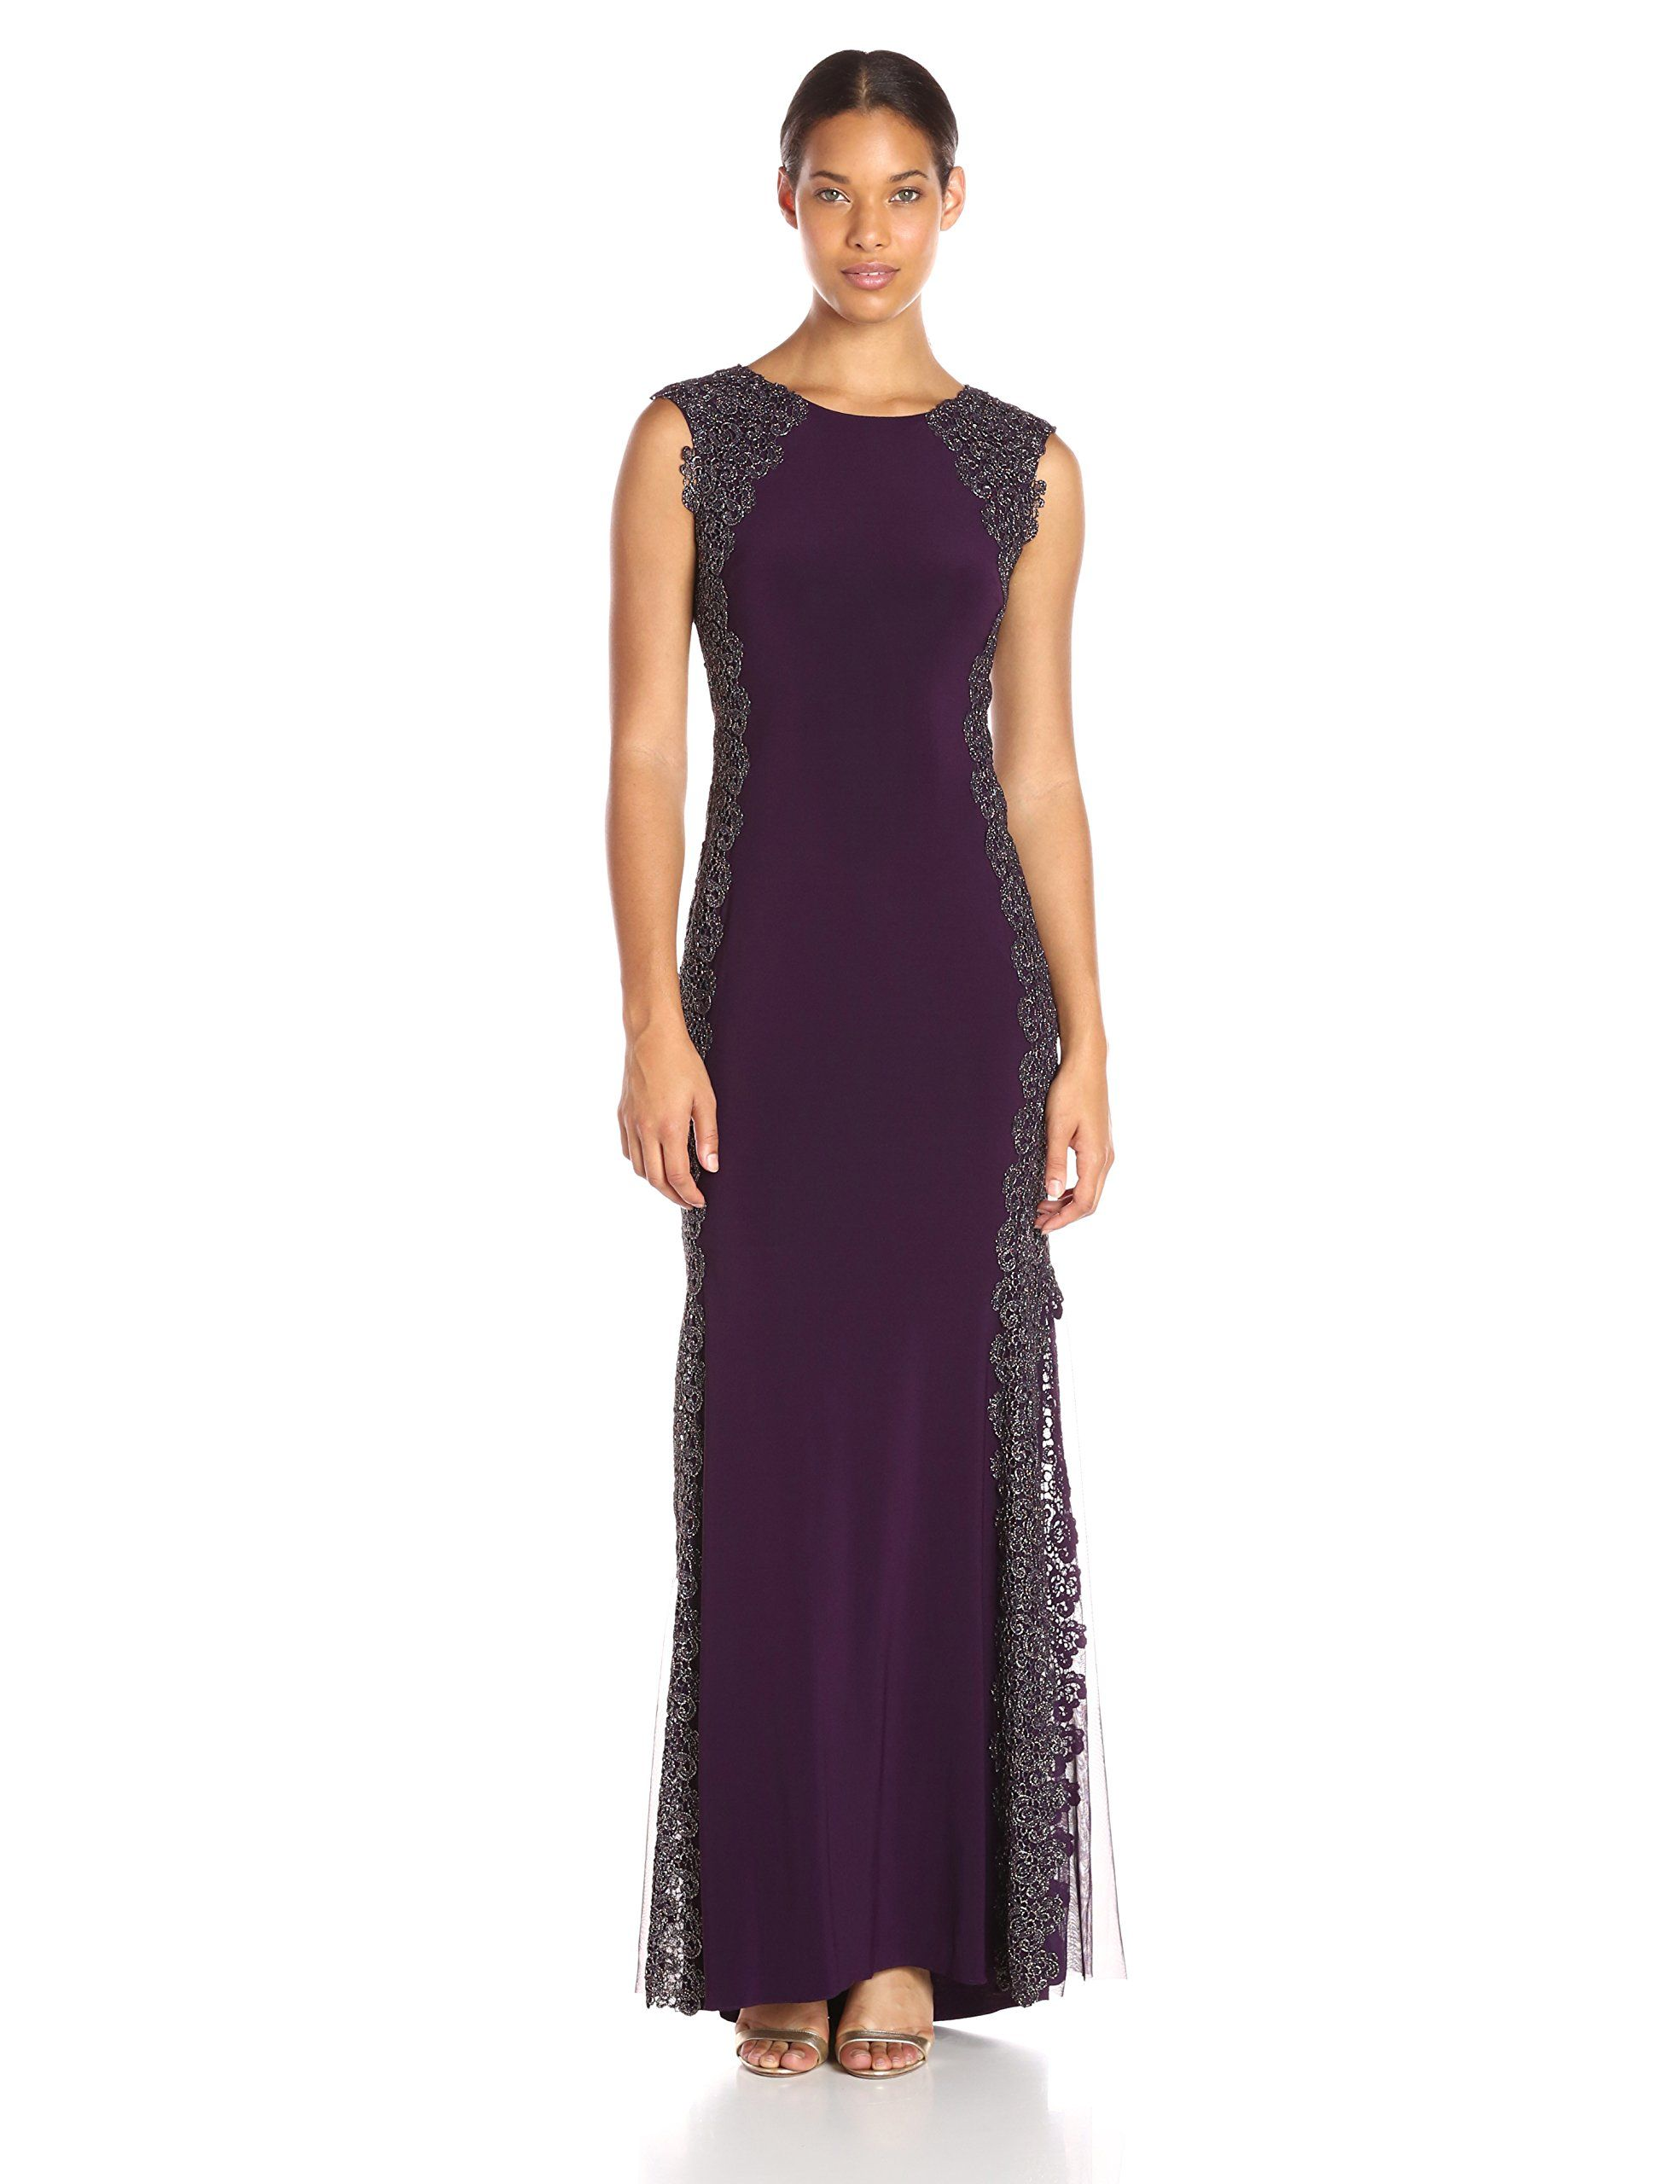 Xscape womens long ity dress with lace sides plumgold details